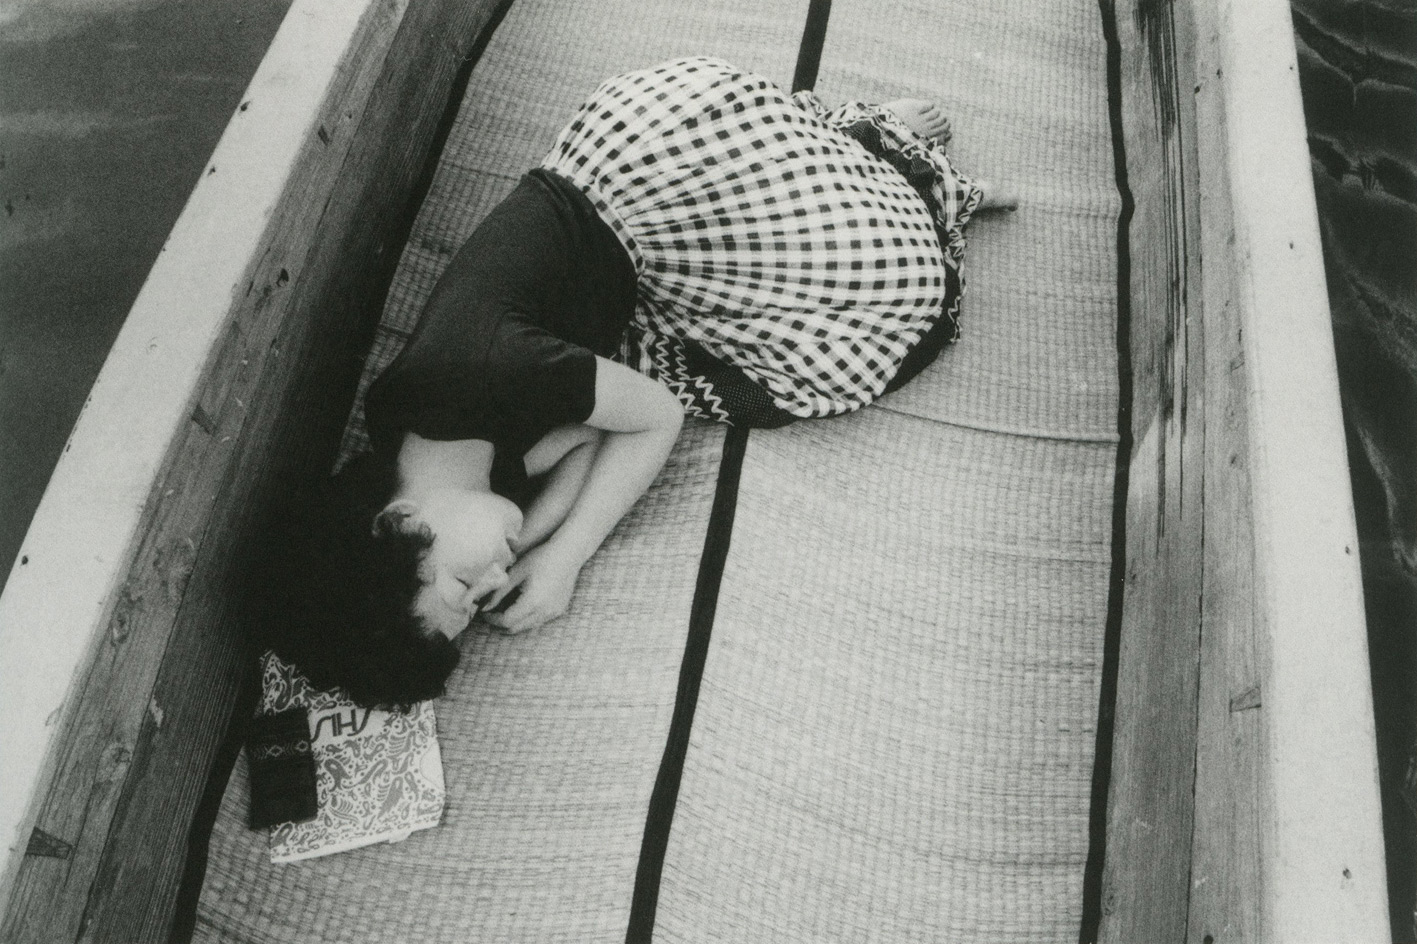 Black and white photograph of a Japanese woman sleeping in a fetal position on a boat